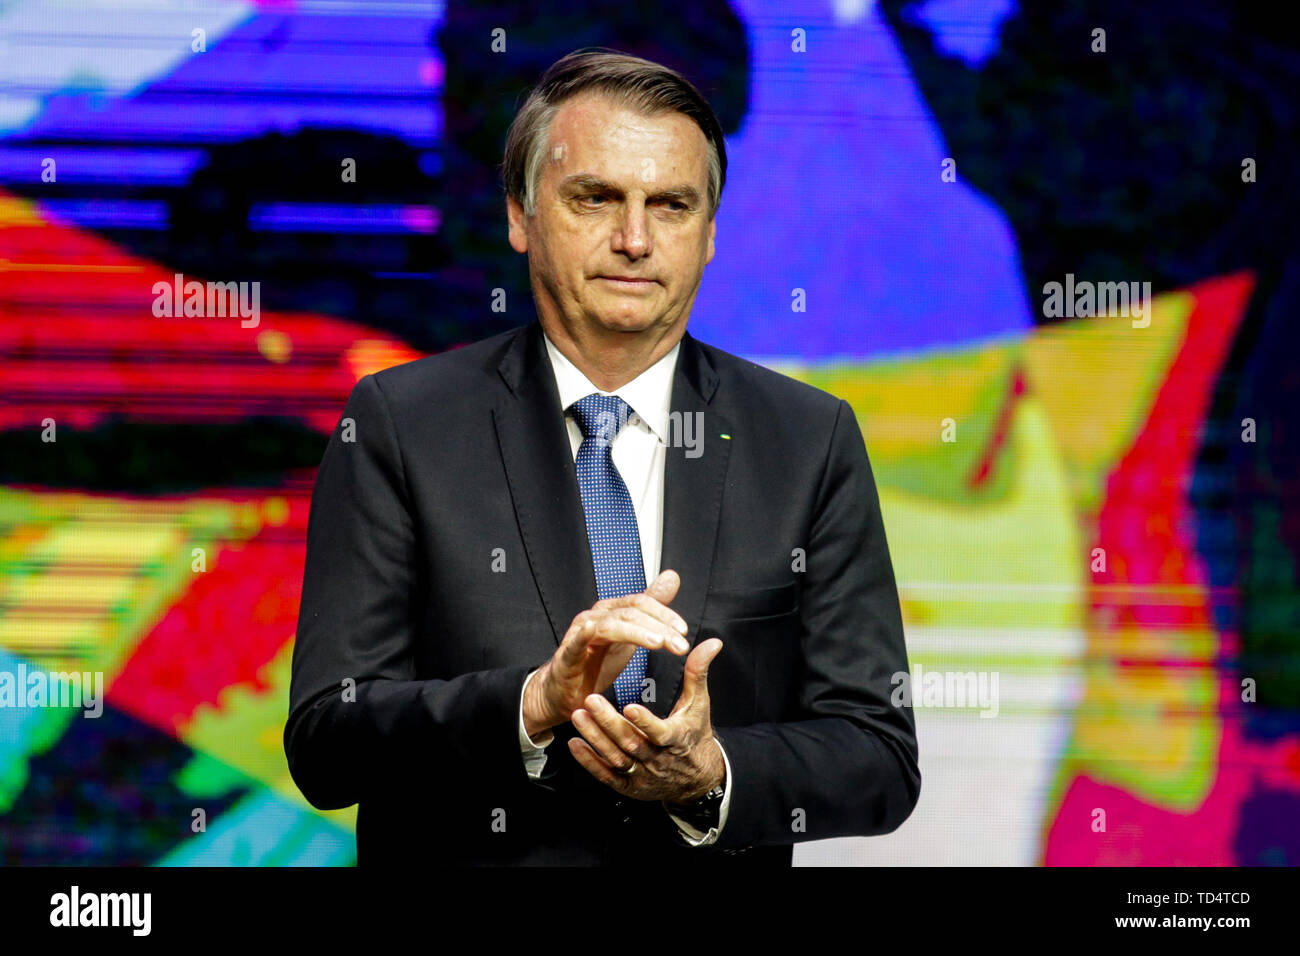 Sao Paulo, Brazil. 11th June, 2019. President Jair Bolsonaro, PSL, received the medal of the Order of Industrial Merit, at the Sesi Theater, at the headquarters of the Federation of Industries of the State of Sao Paulo, FIESP, on Avenida Paulista, the Economist Paulo Guedes and the President of FIESP Paulo Skaf. Credit: AGIF/Alamy Live News - Stock Image